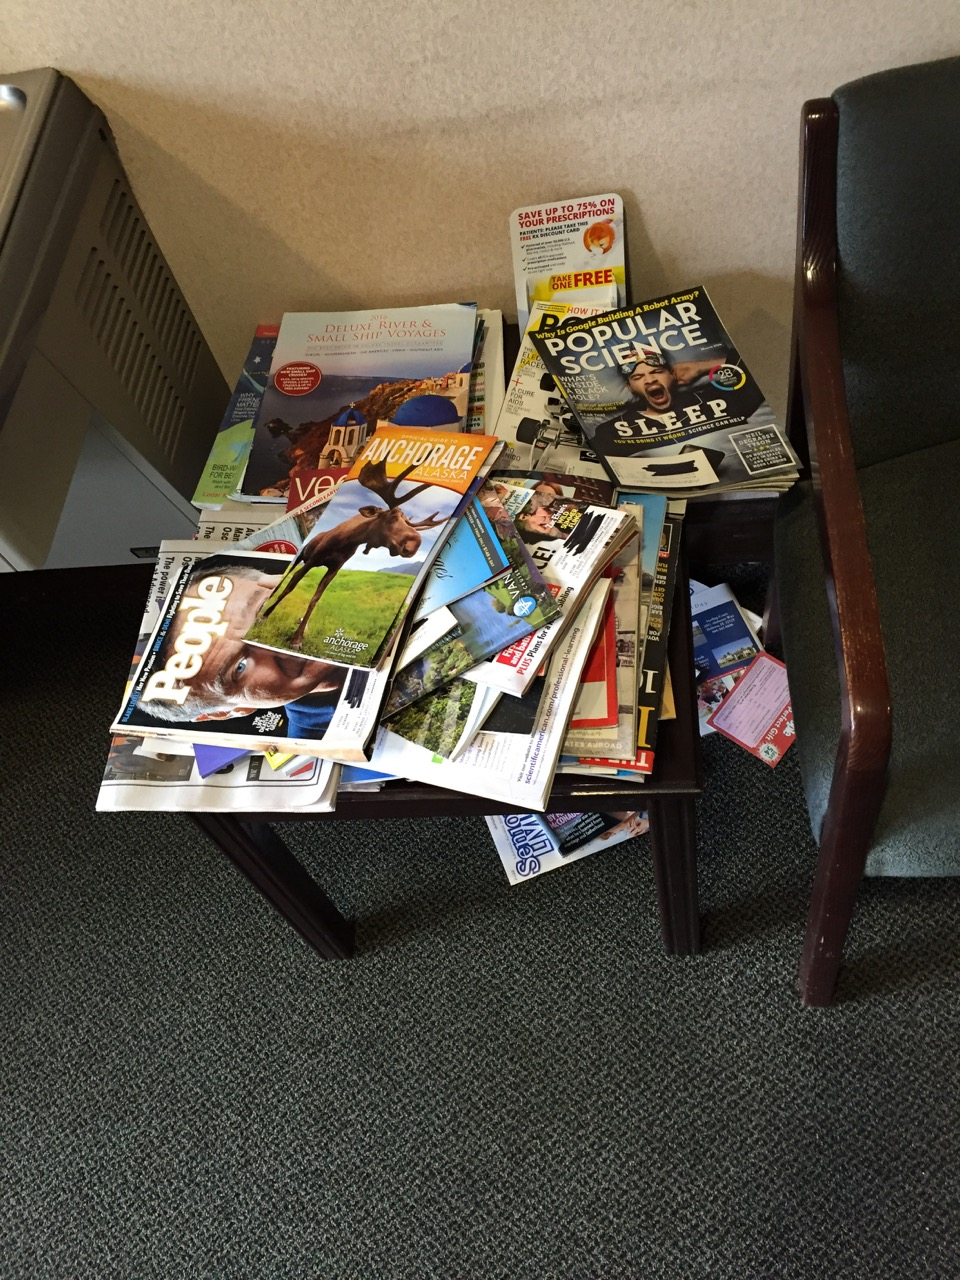 How many magazines does a waiting area need? Photo by J. Jeff Kober.